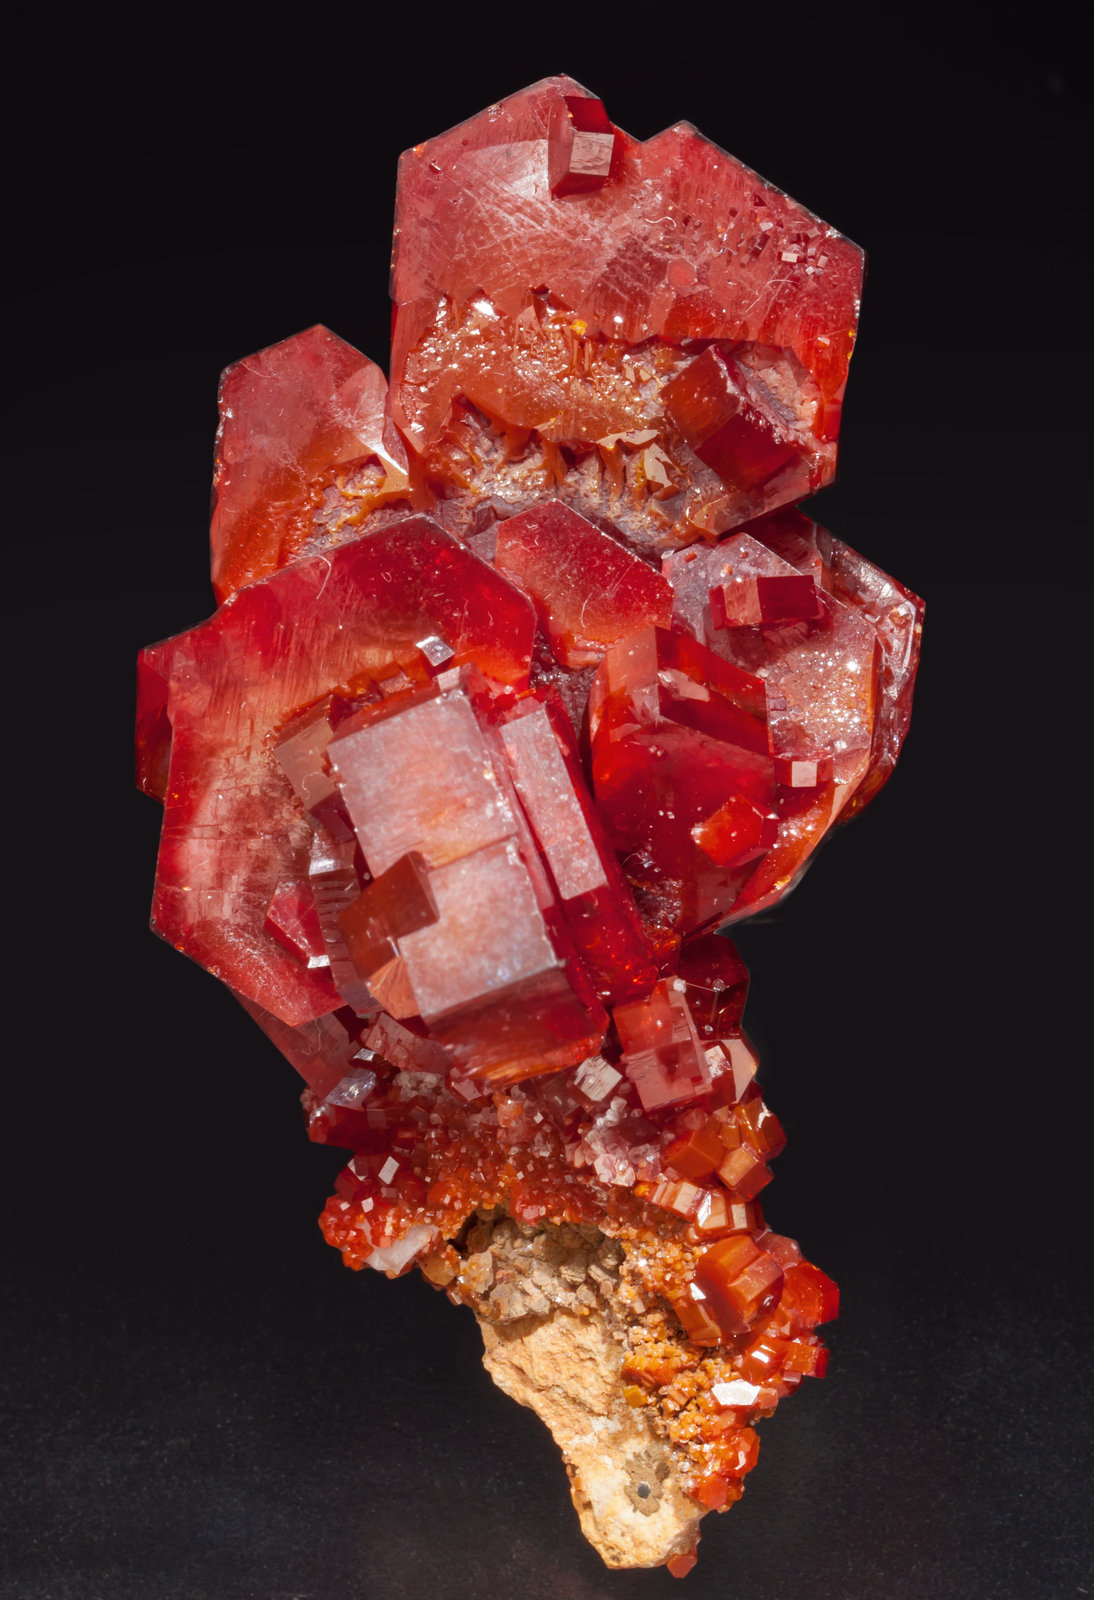 specimens/s_imagesAE5/Vanadinite-EK94AE5f.jpg